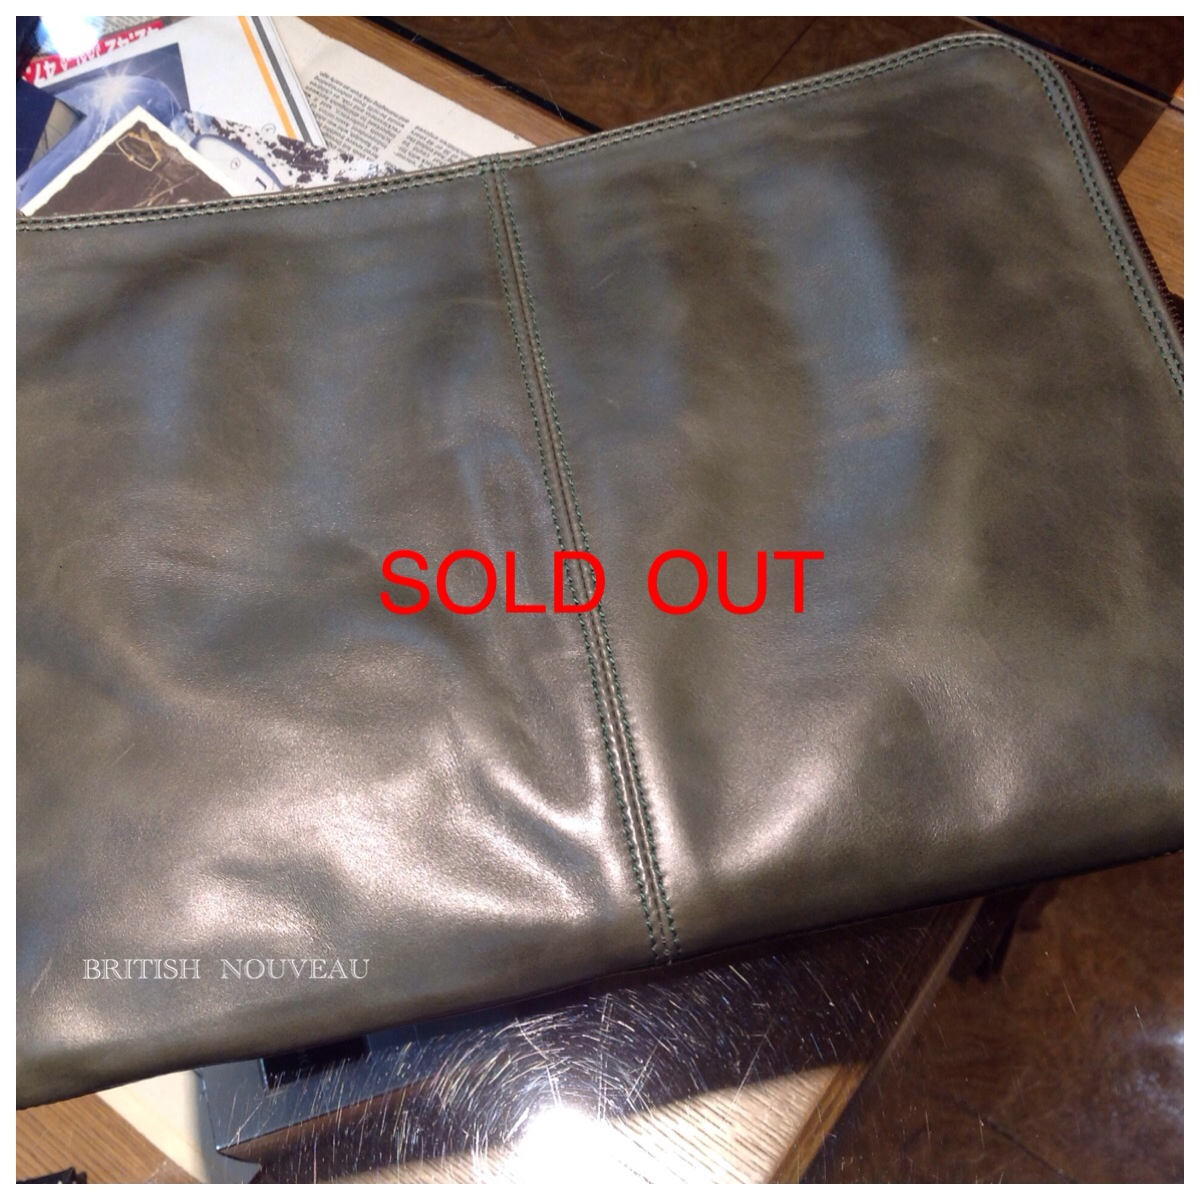 SOLD  OUT  な感じ!_f0039487_1346103.jpg